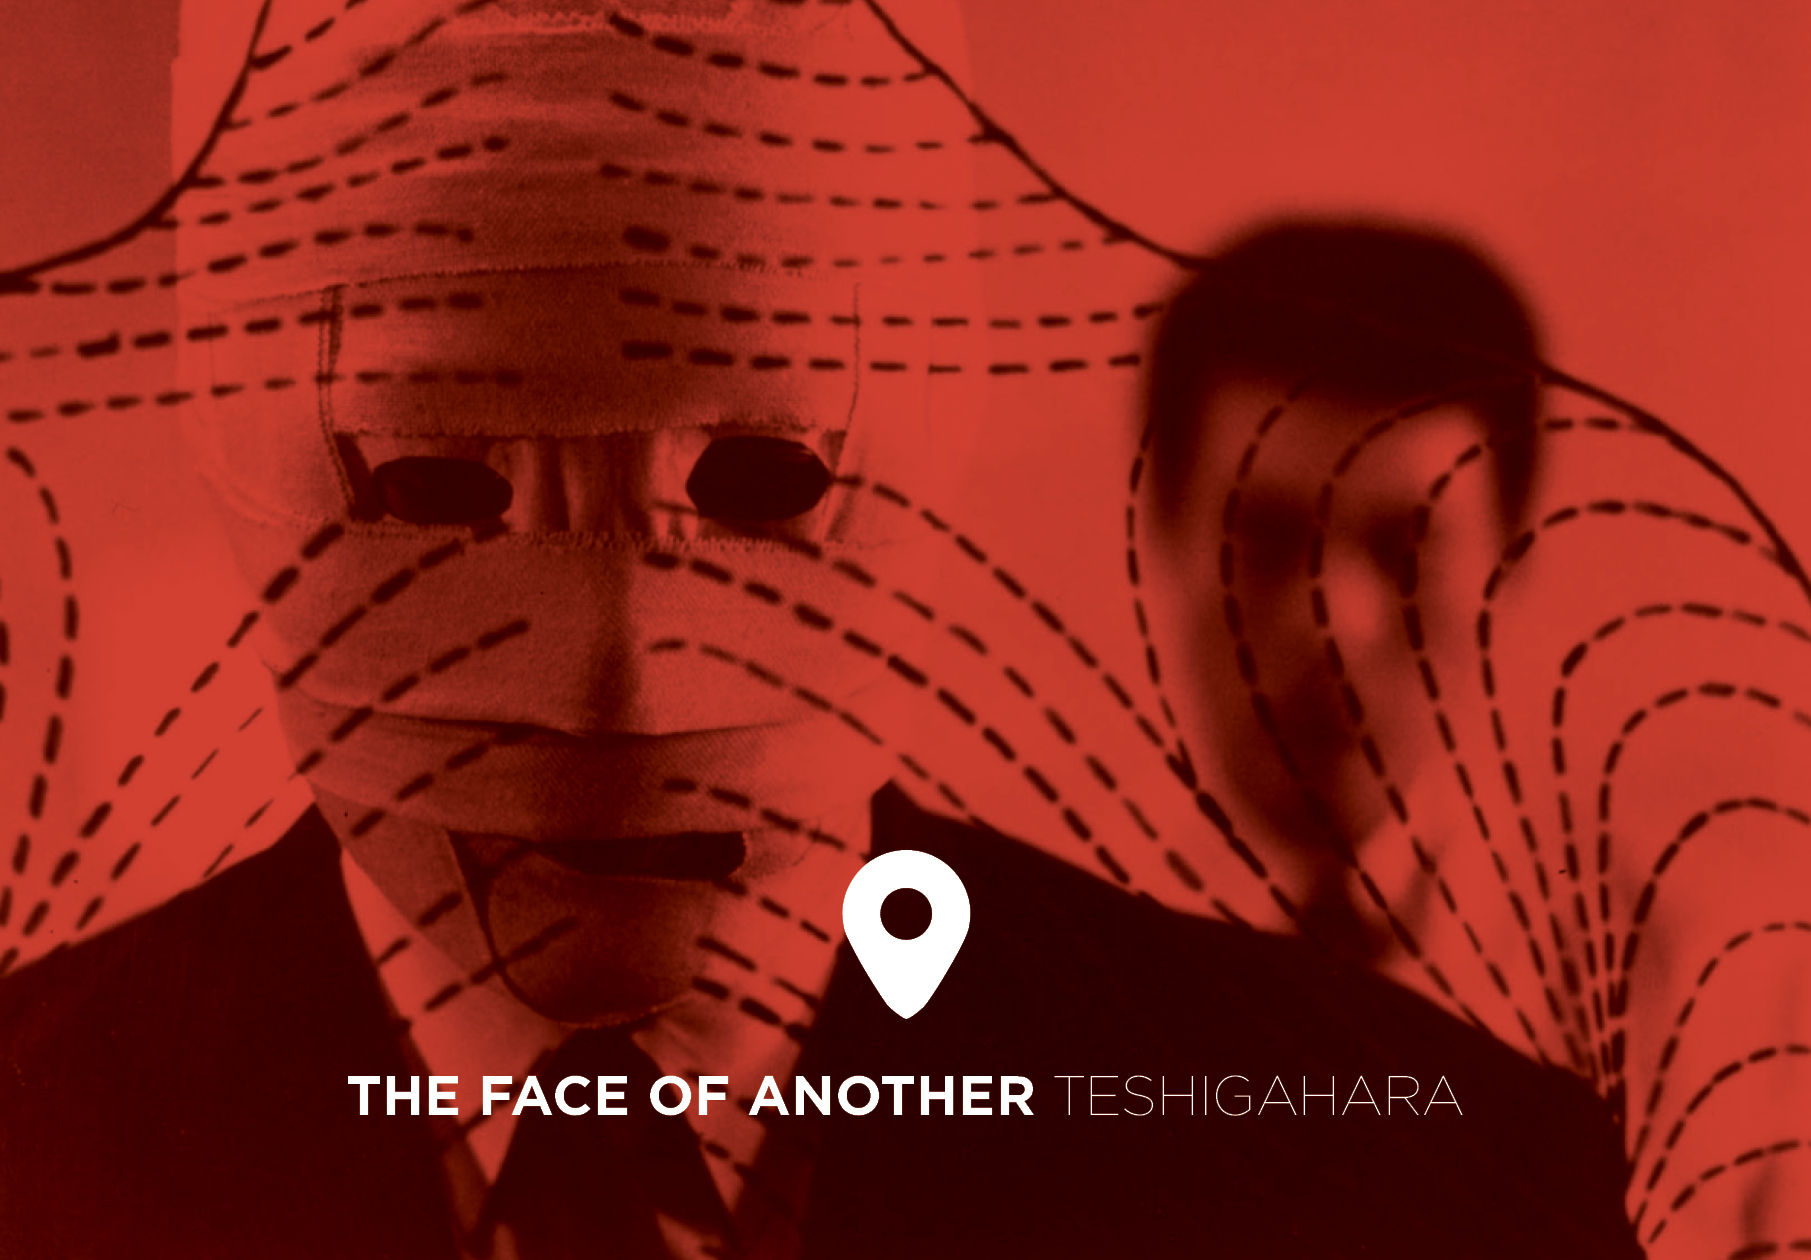 The Face of Another by Hiroshi Tashigehera